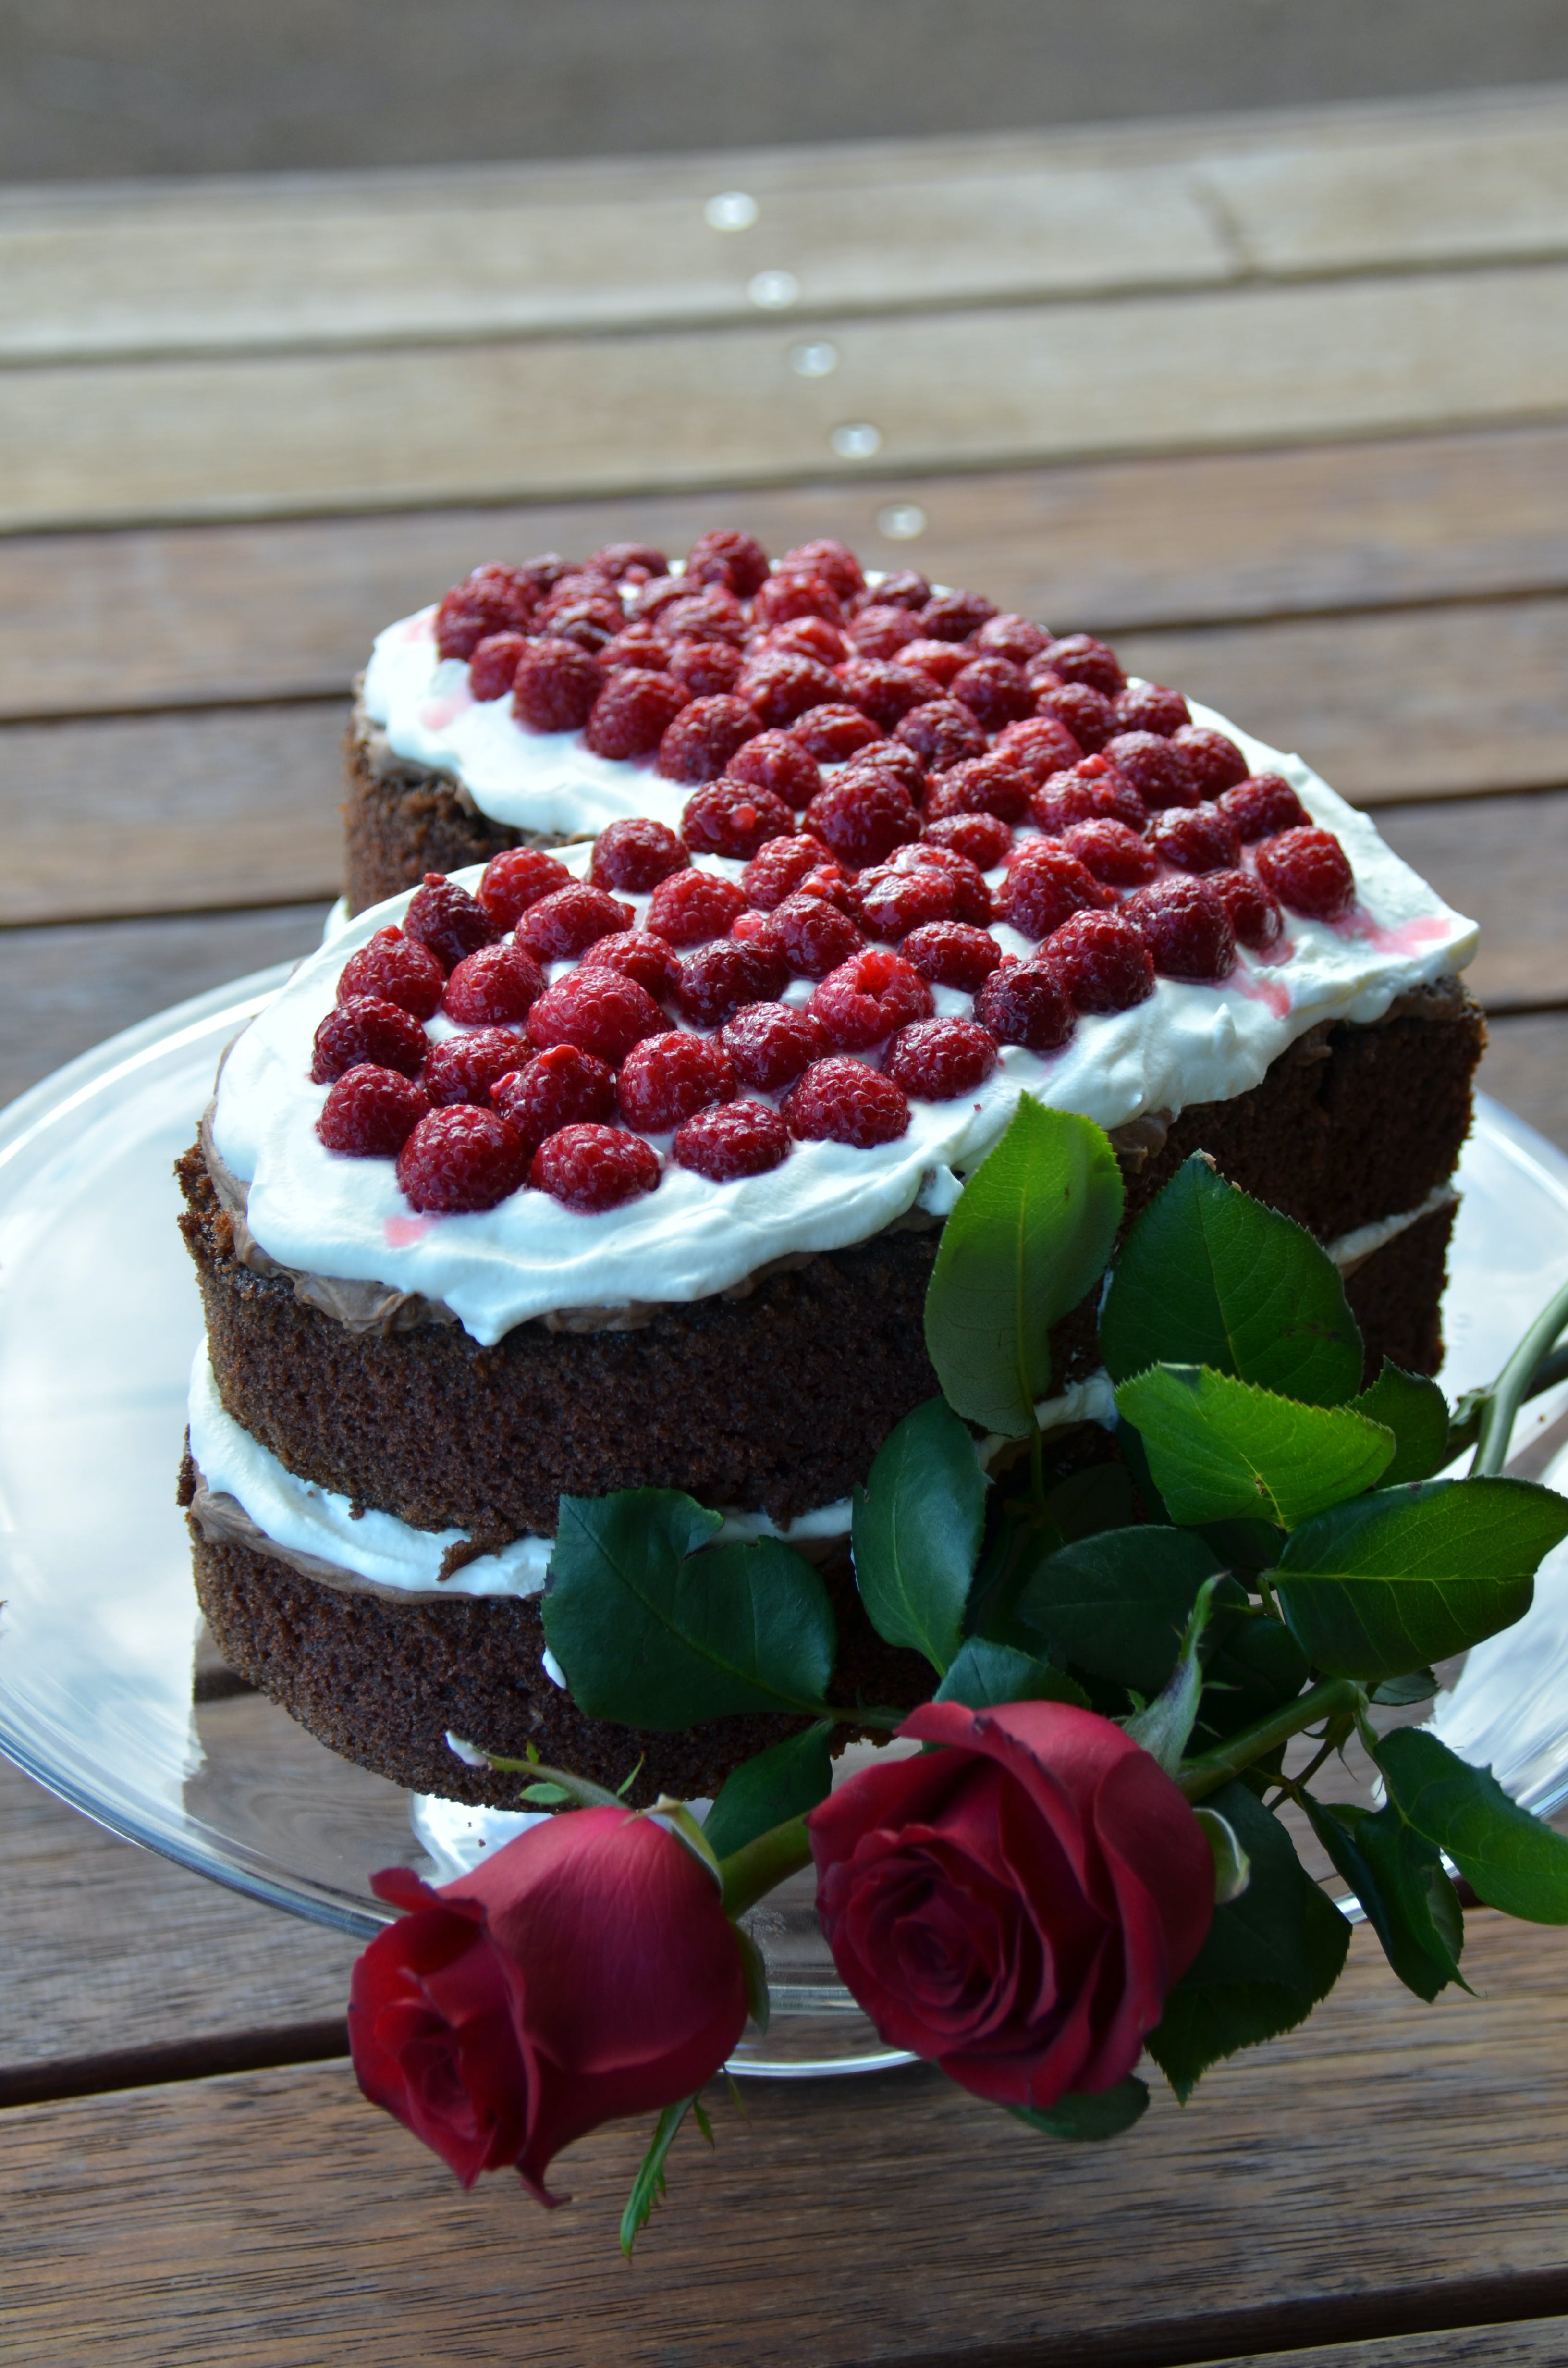 Free stock photo of heart shaped chocolate cake, red roses, valentine's day